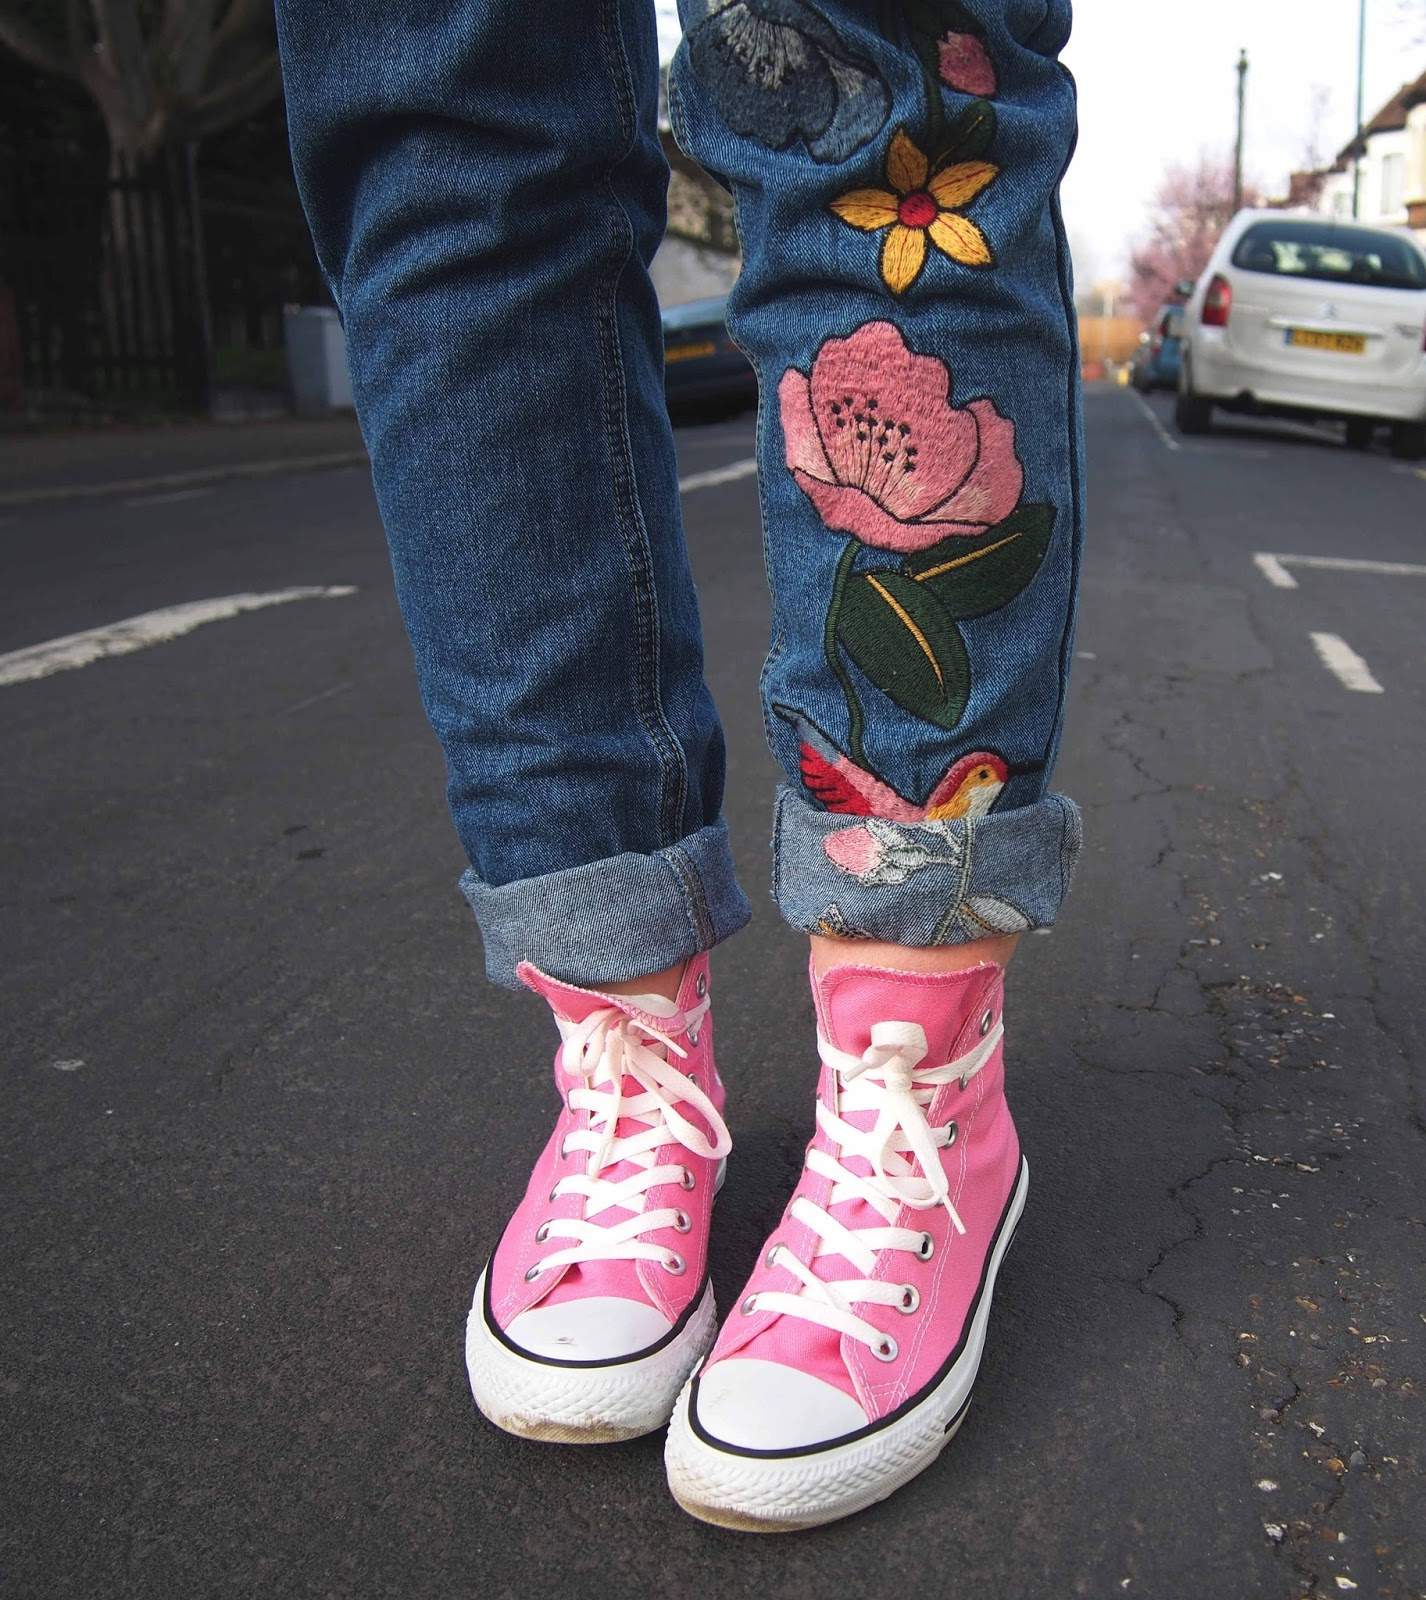 embroidered jeans, embroidered mom jeans, floral embroidered jeans, spring outfit ideas, necktie, pink converse, grunge fashion blog, grunge outfits